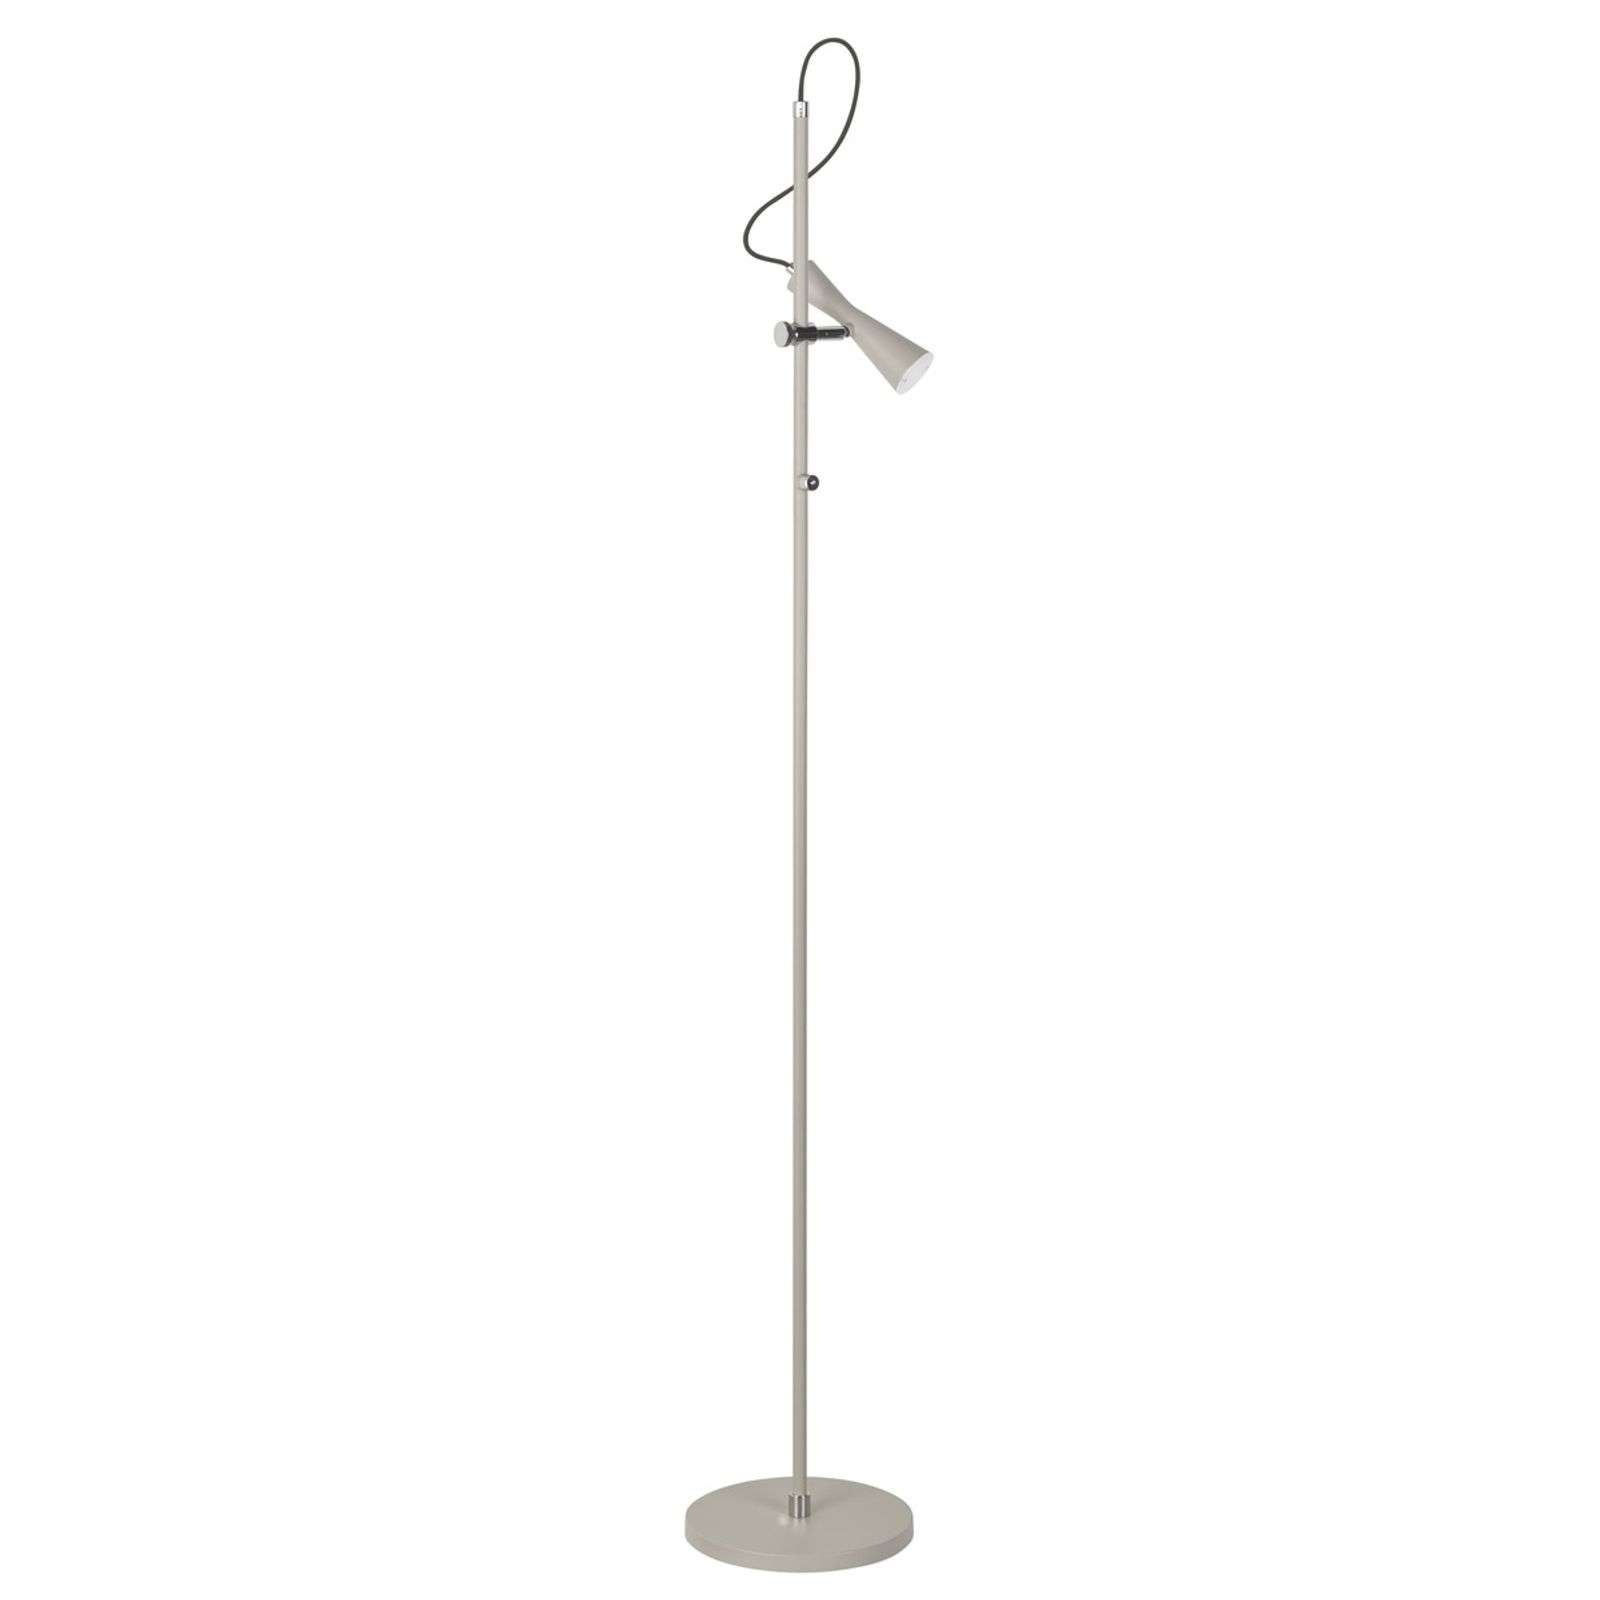 Move - lampadaire LED beige avec talent